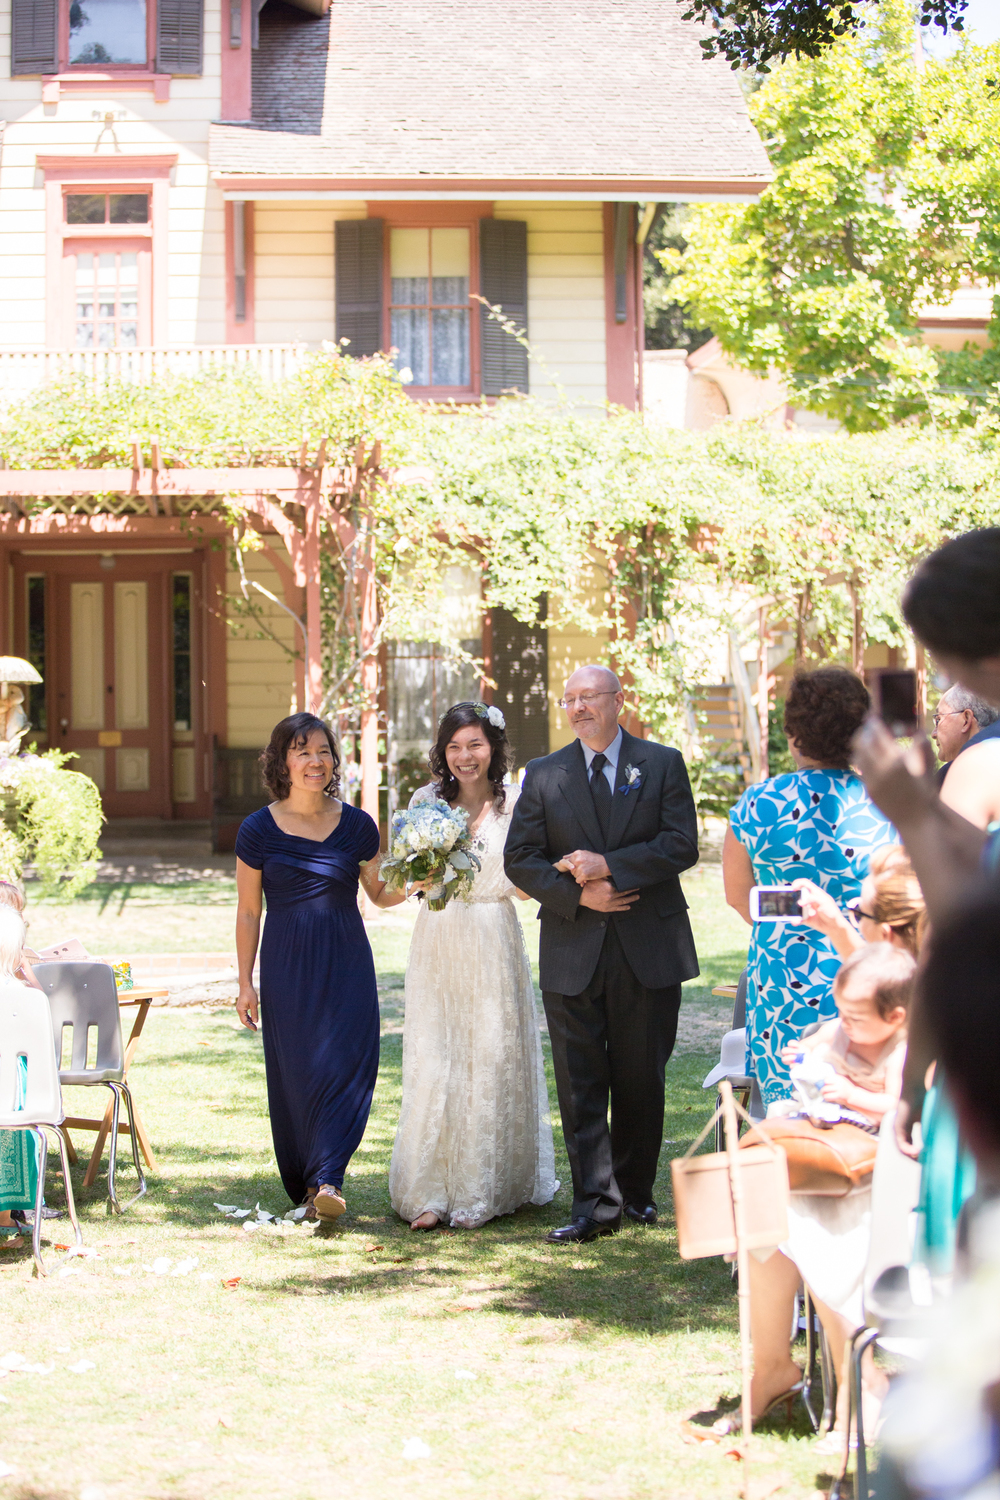 Chico California Wedding and Engagement Photography by TréCreative - Fremont Wedding Photography (169 of 261).jpg